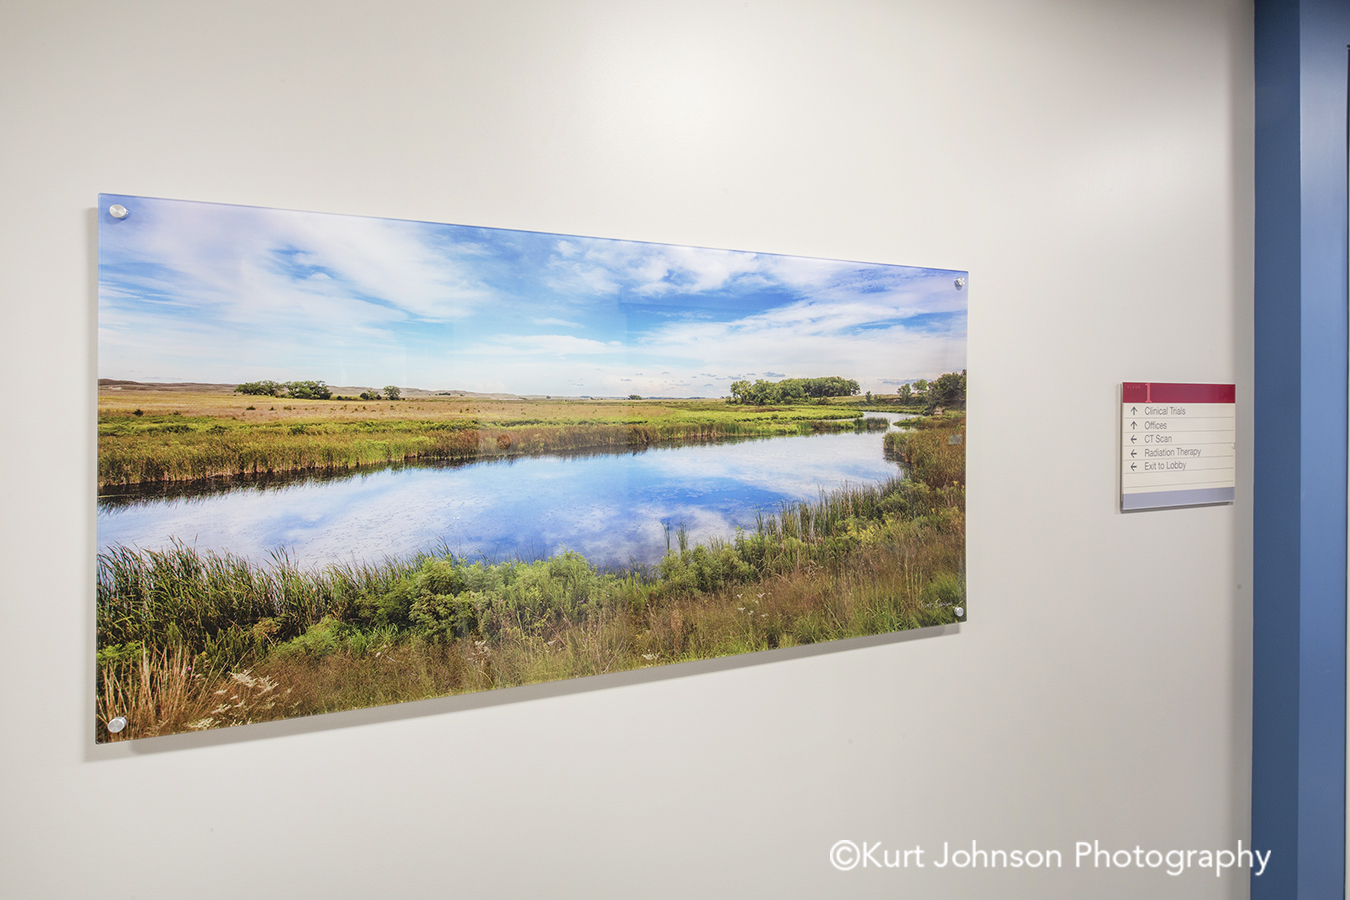 acrylic panel install healthcare installation CHI St Saint Francis Grand Island Nebraska clinic cancer treatment hallway corridor midwest landscape botanical